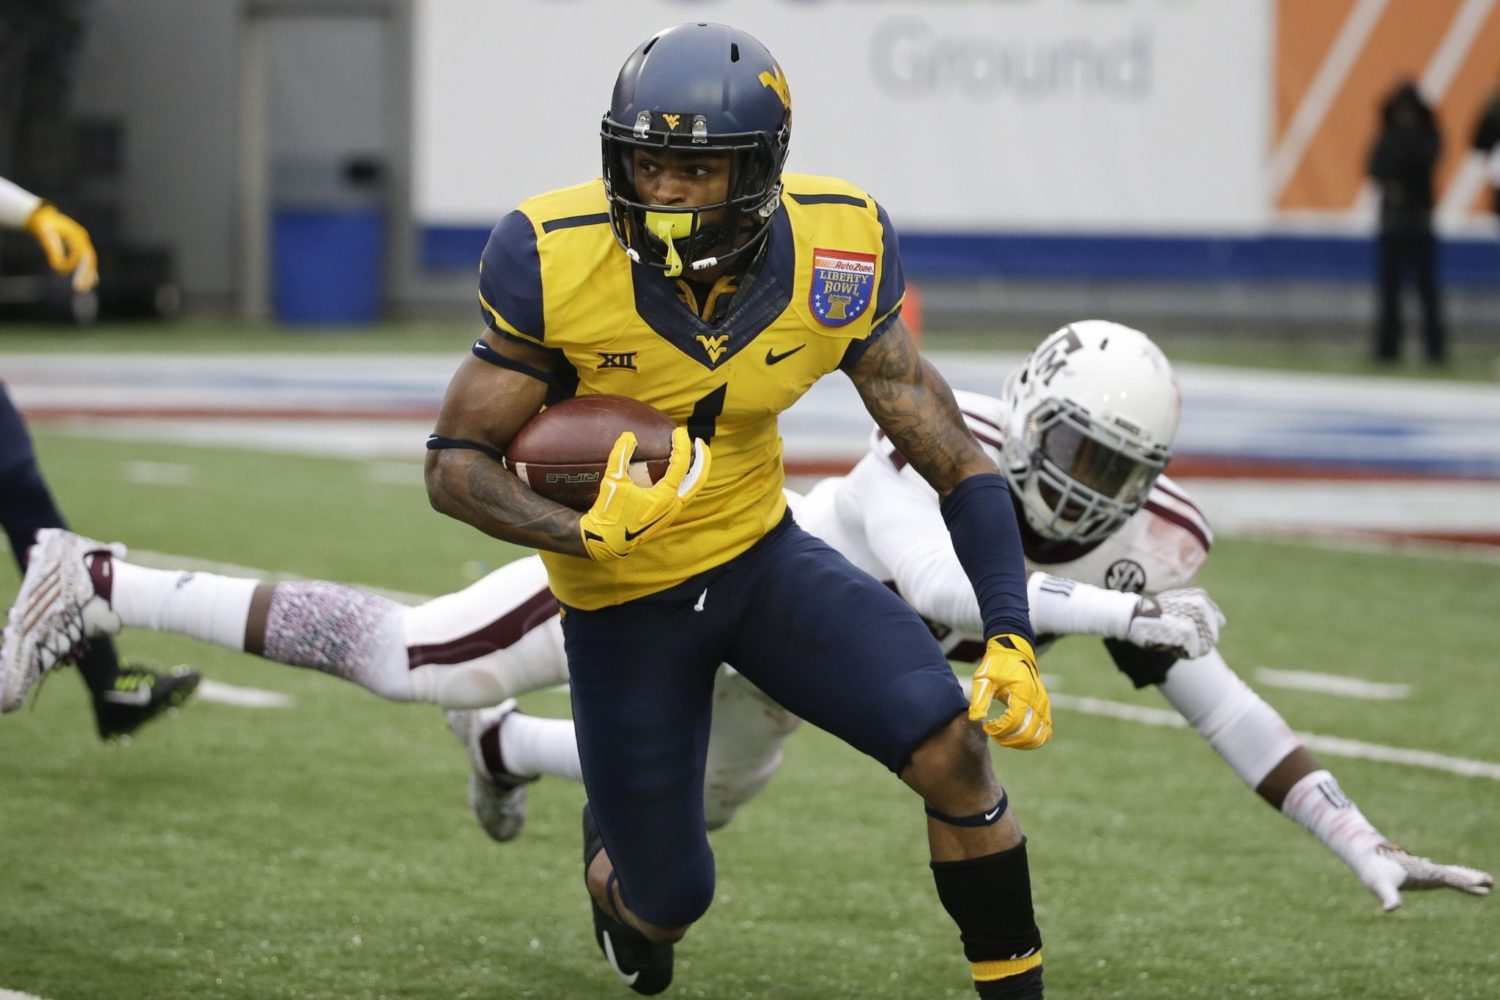 Shelton Gibson, WR, West Virginia